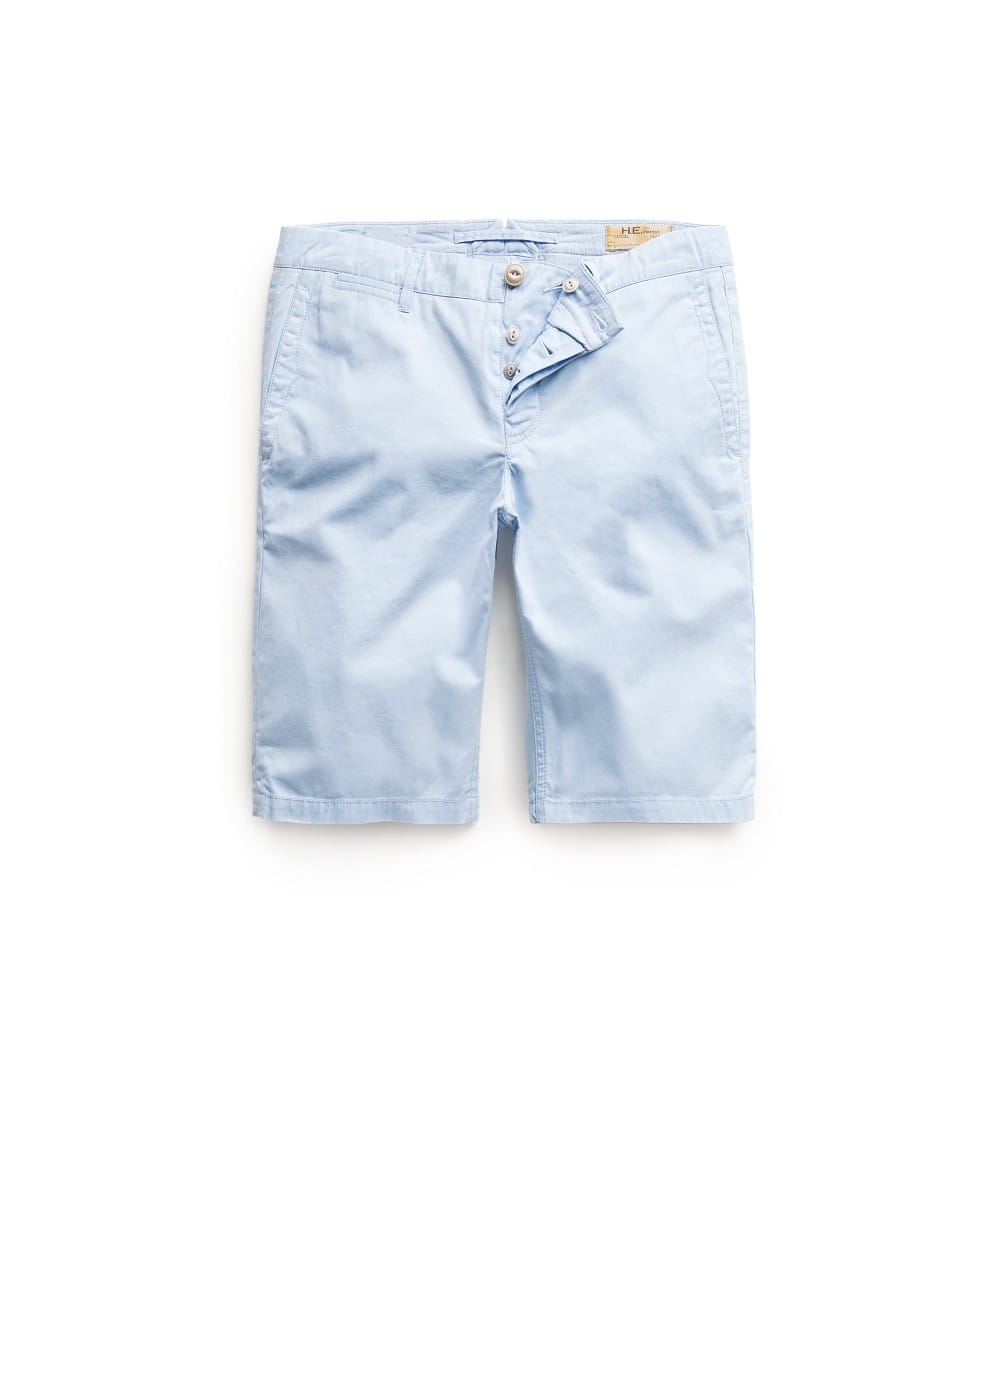 Garment-dyed cotton bermuda shorts